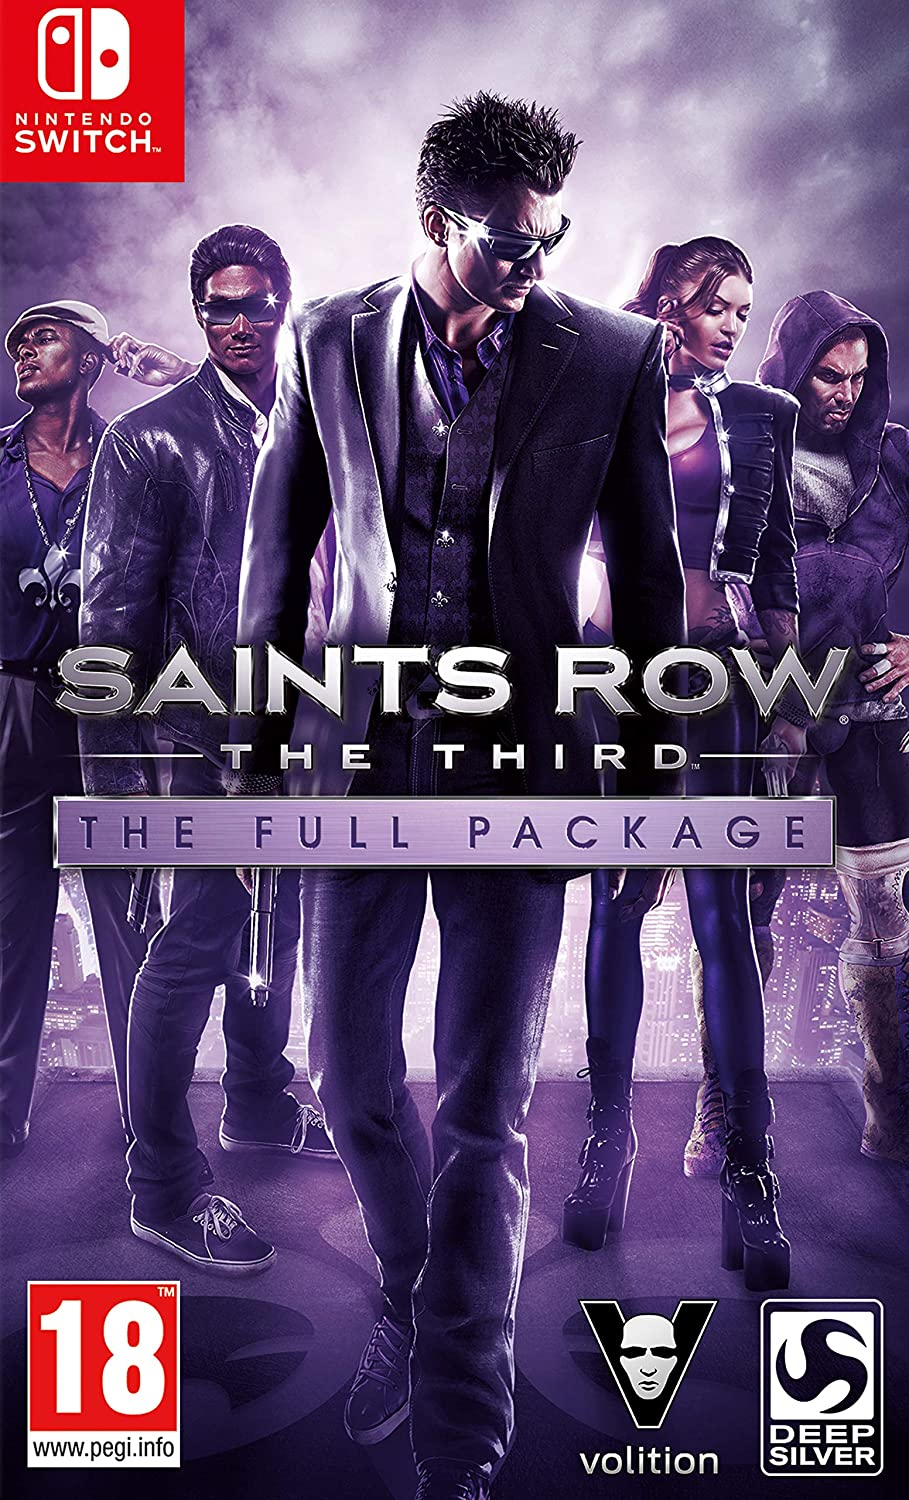 Saints Row: The Third - The Full Package: Amazon.es: Videojuegos